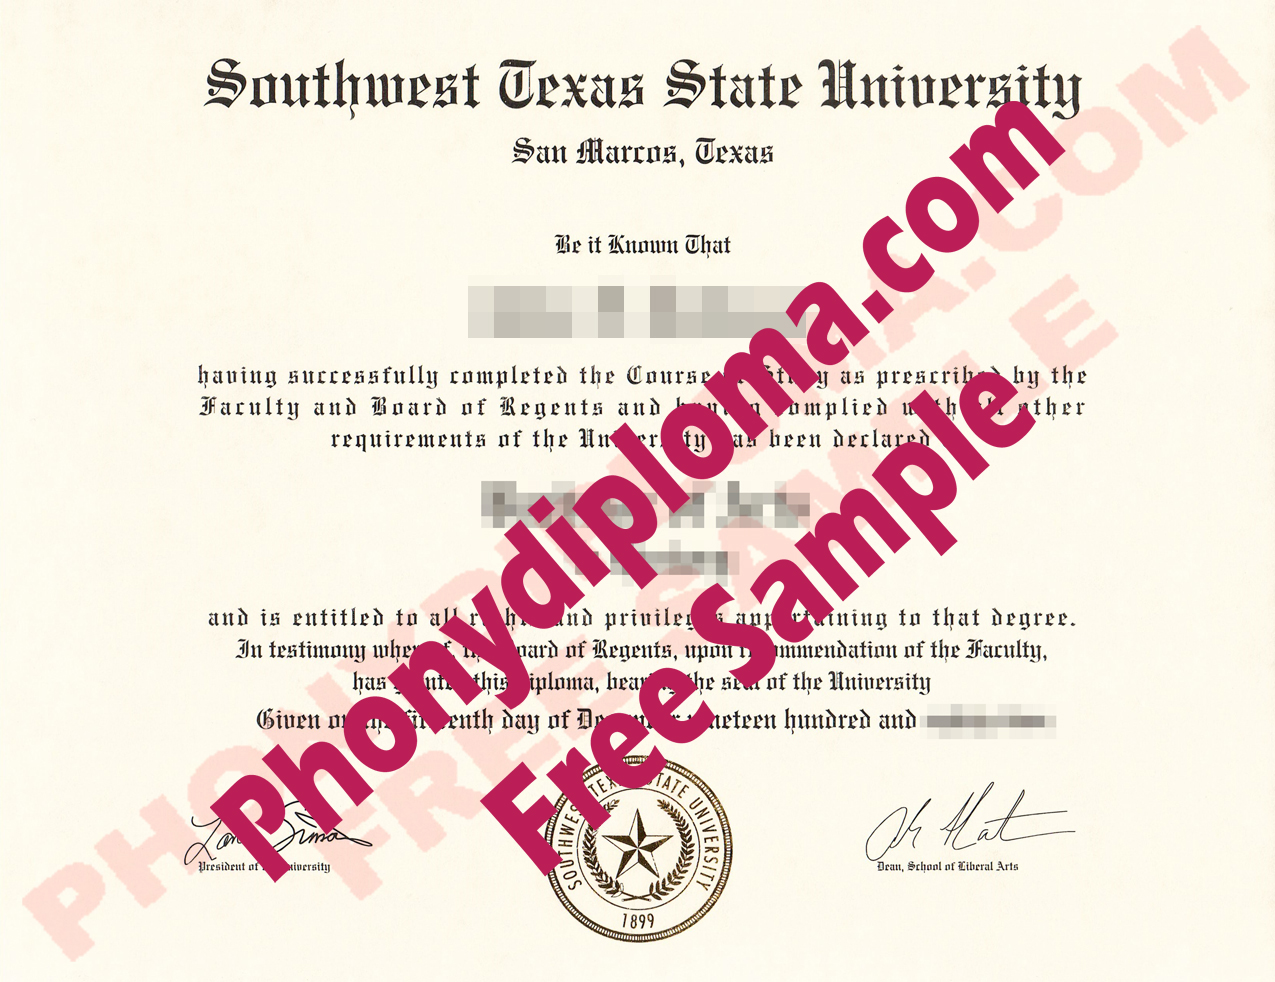 Southwest Texas State University Free Sample From Phonydiploma (2)